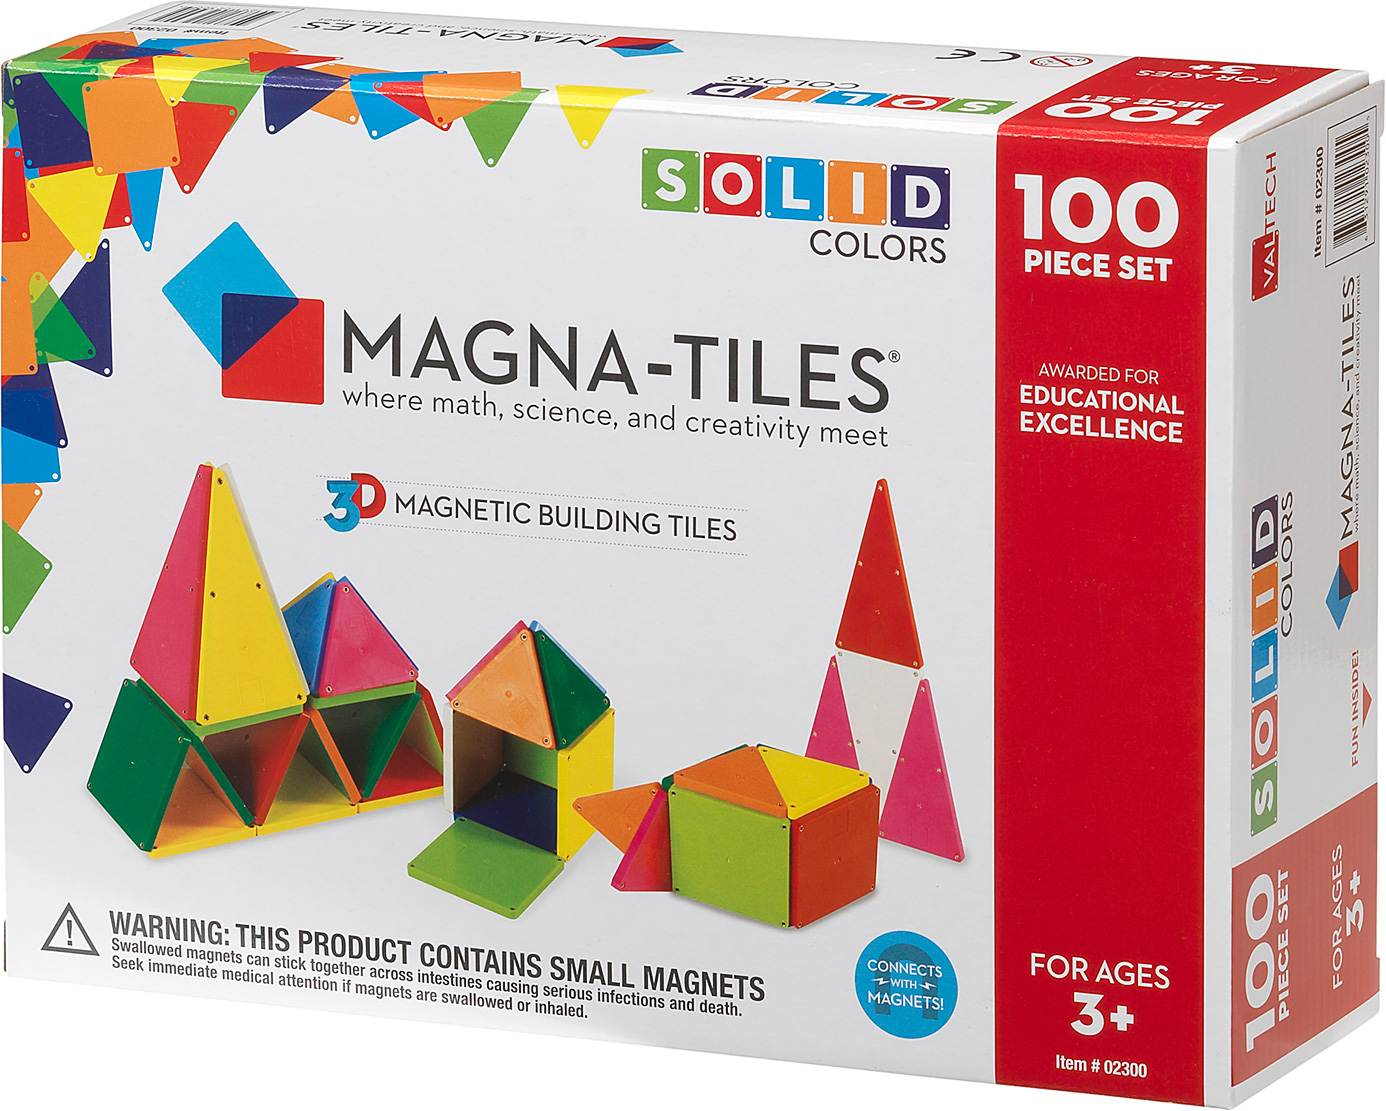 magna tiles solid colors 100 piece set raff and friends